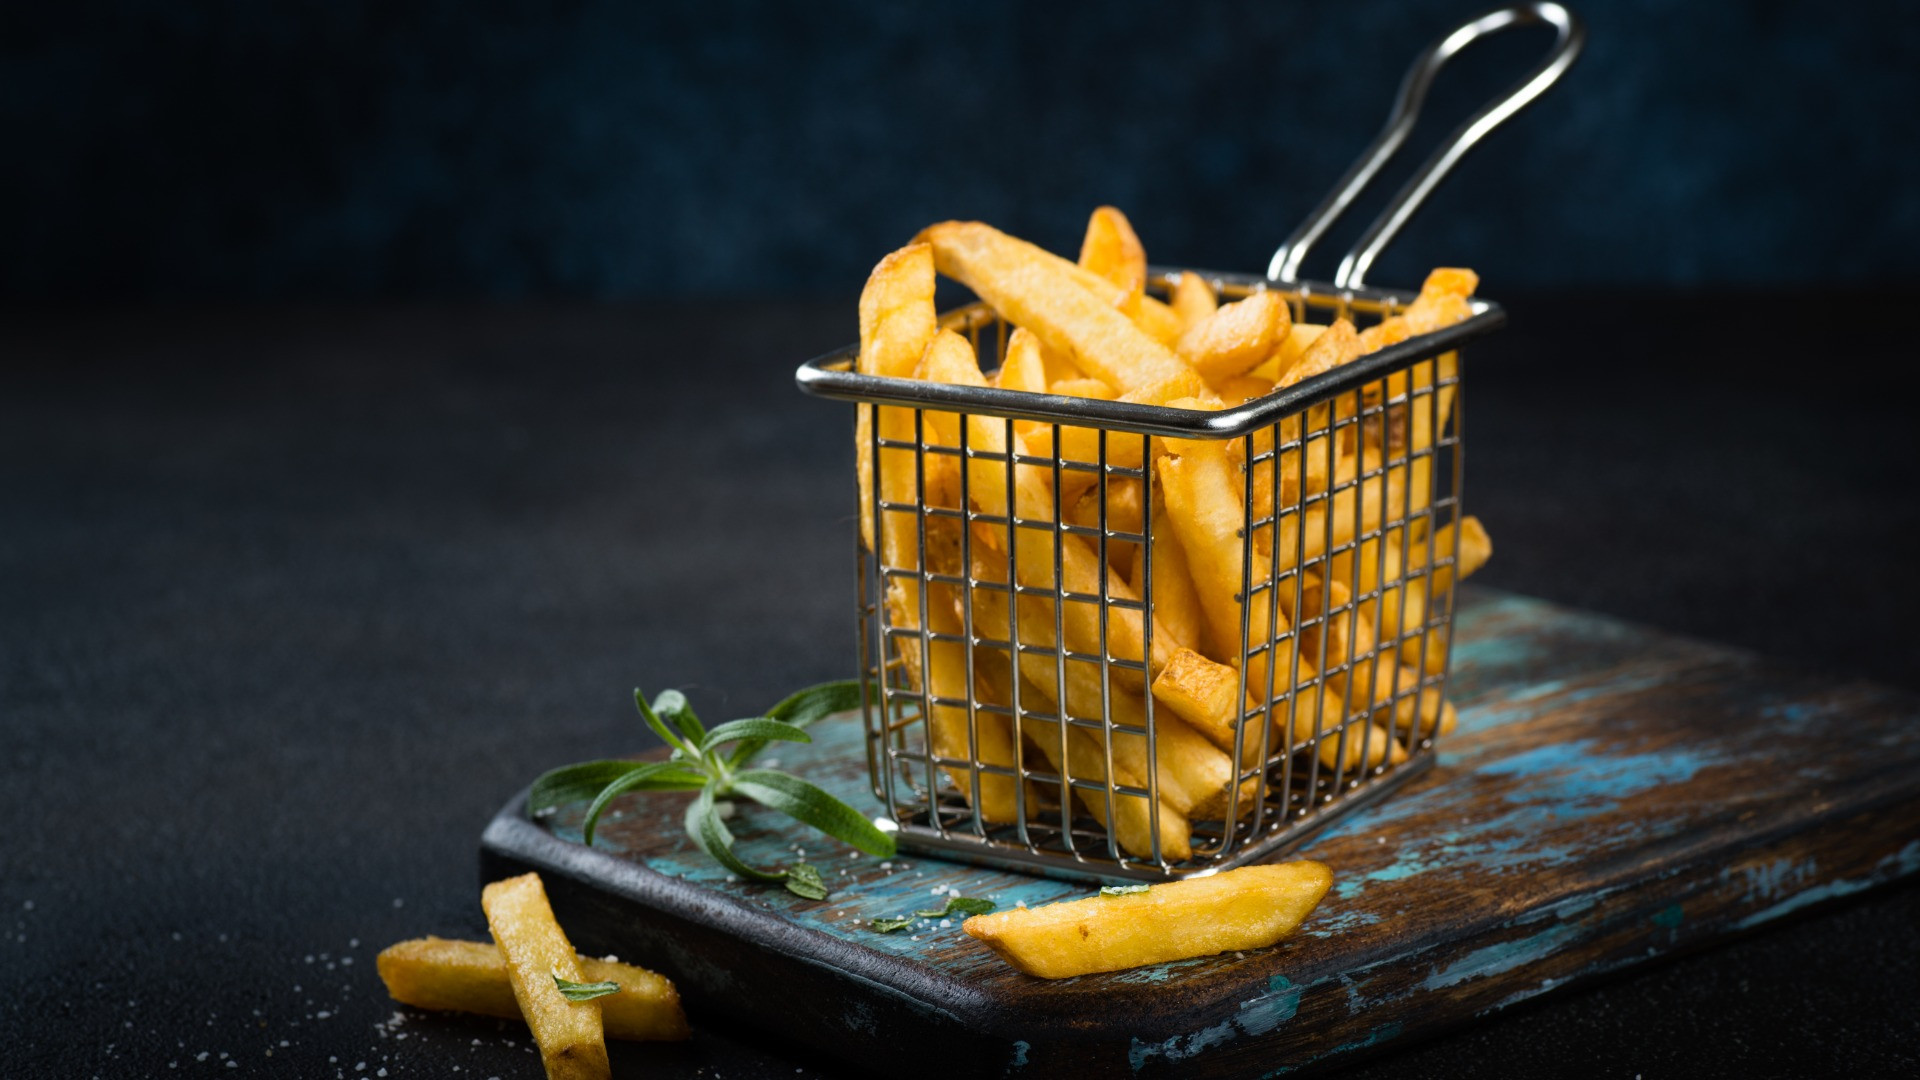 French%20fries%20close%20up%20with%20sal